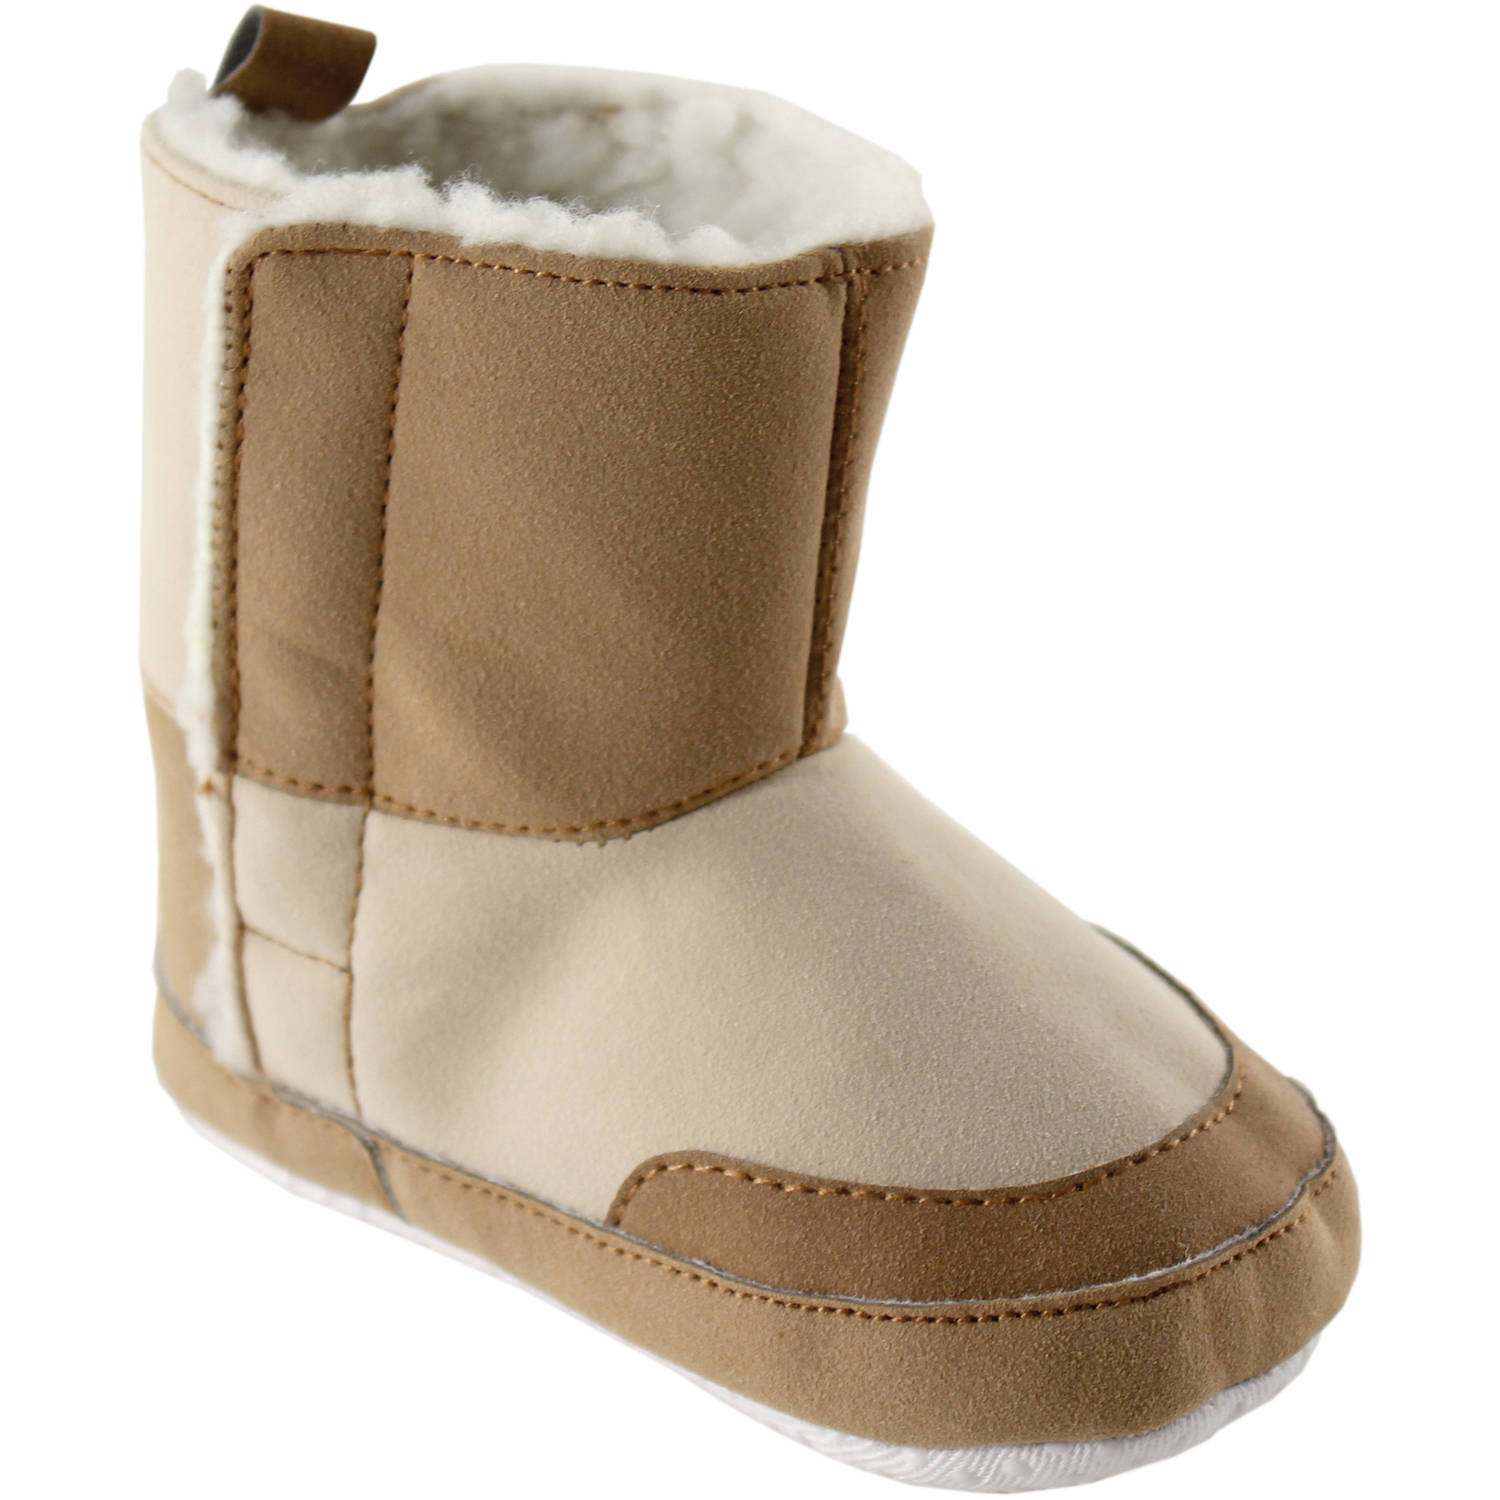 Luvable Friends Baby Girl's Winter Boots (Infant), Tan, 0-6 Months M US Infant